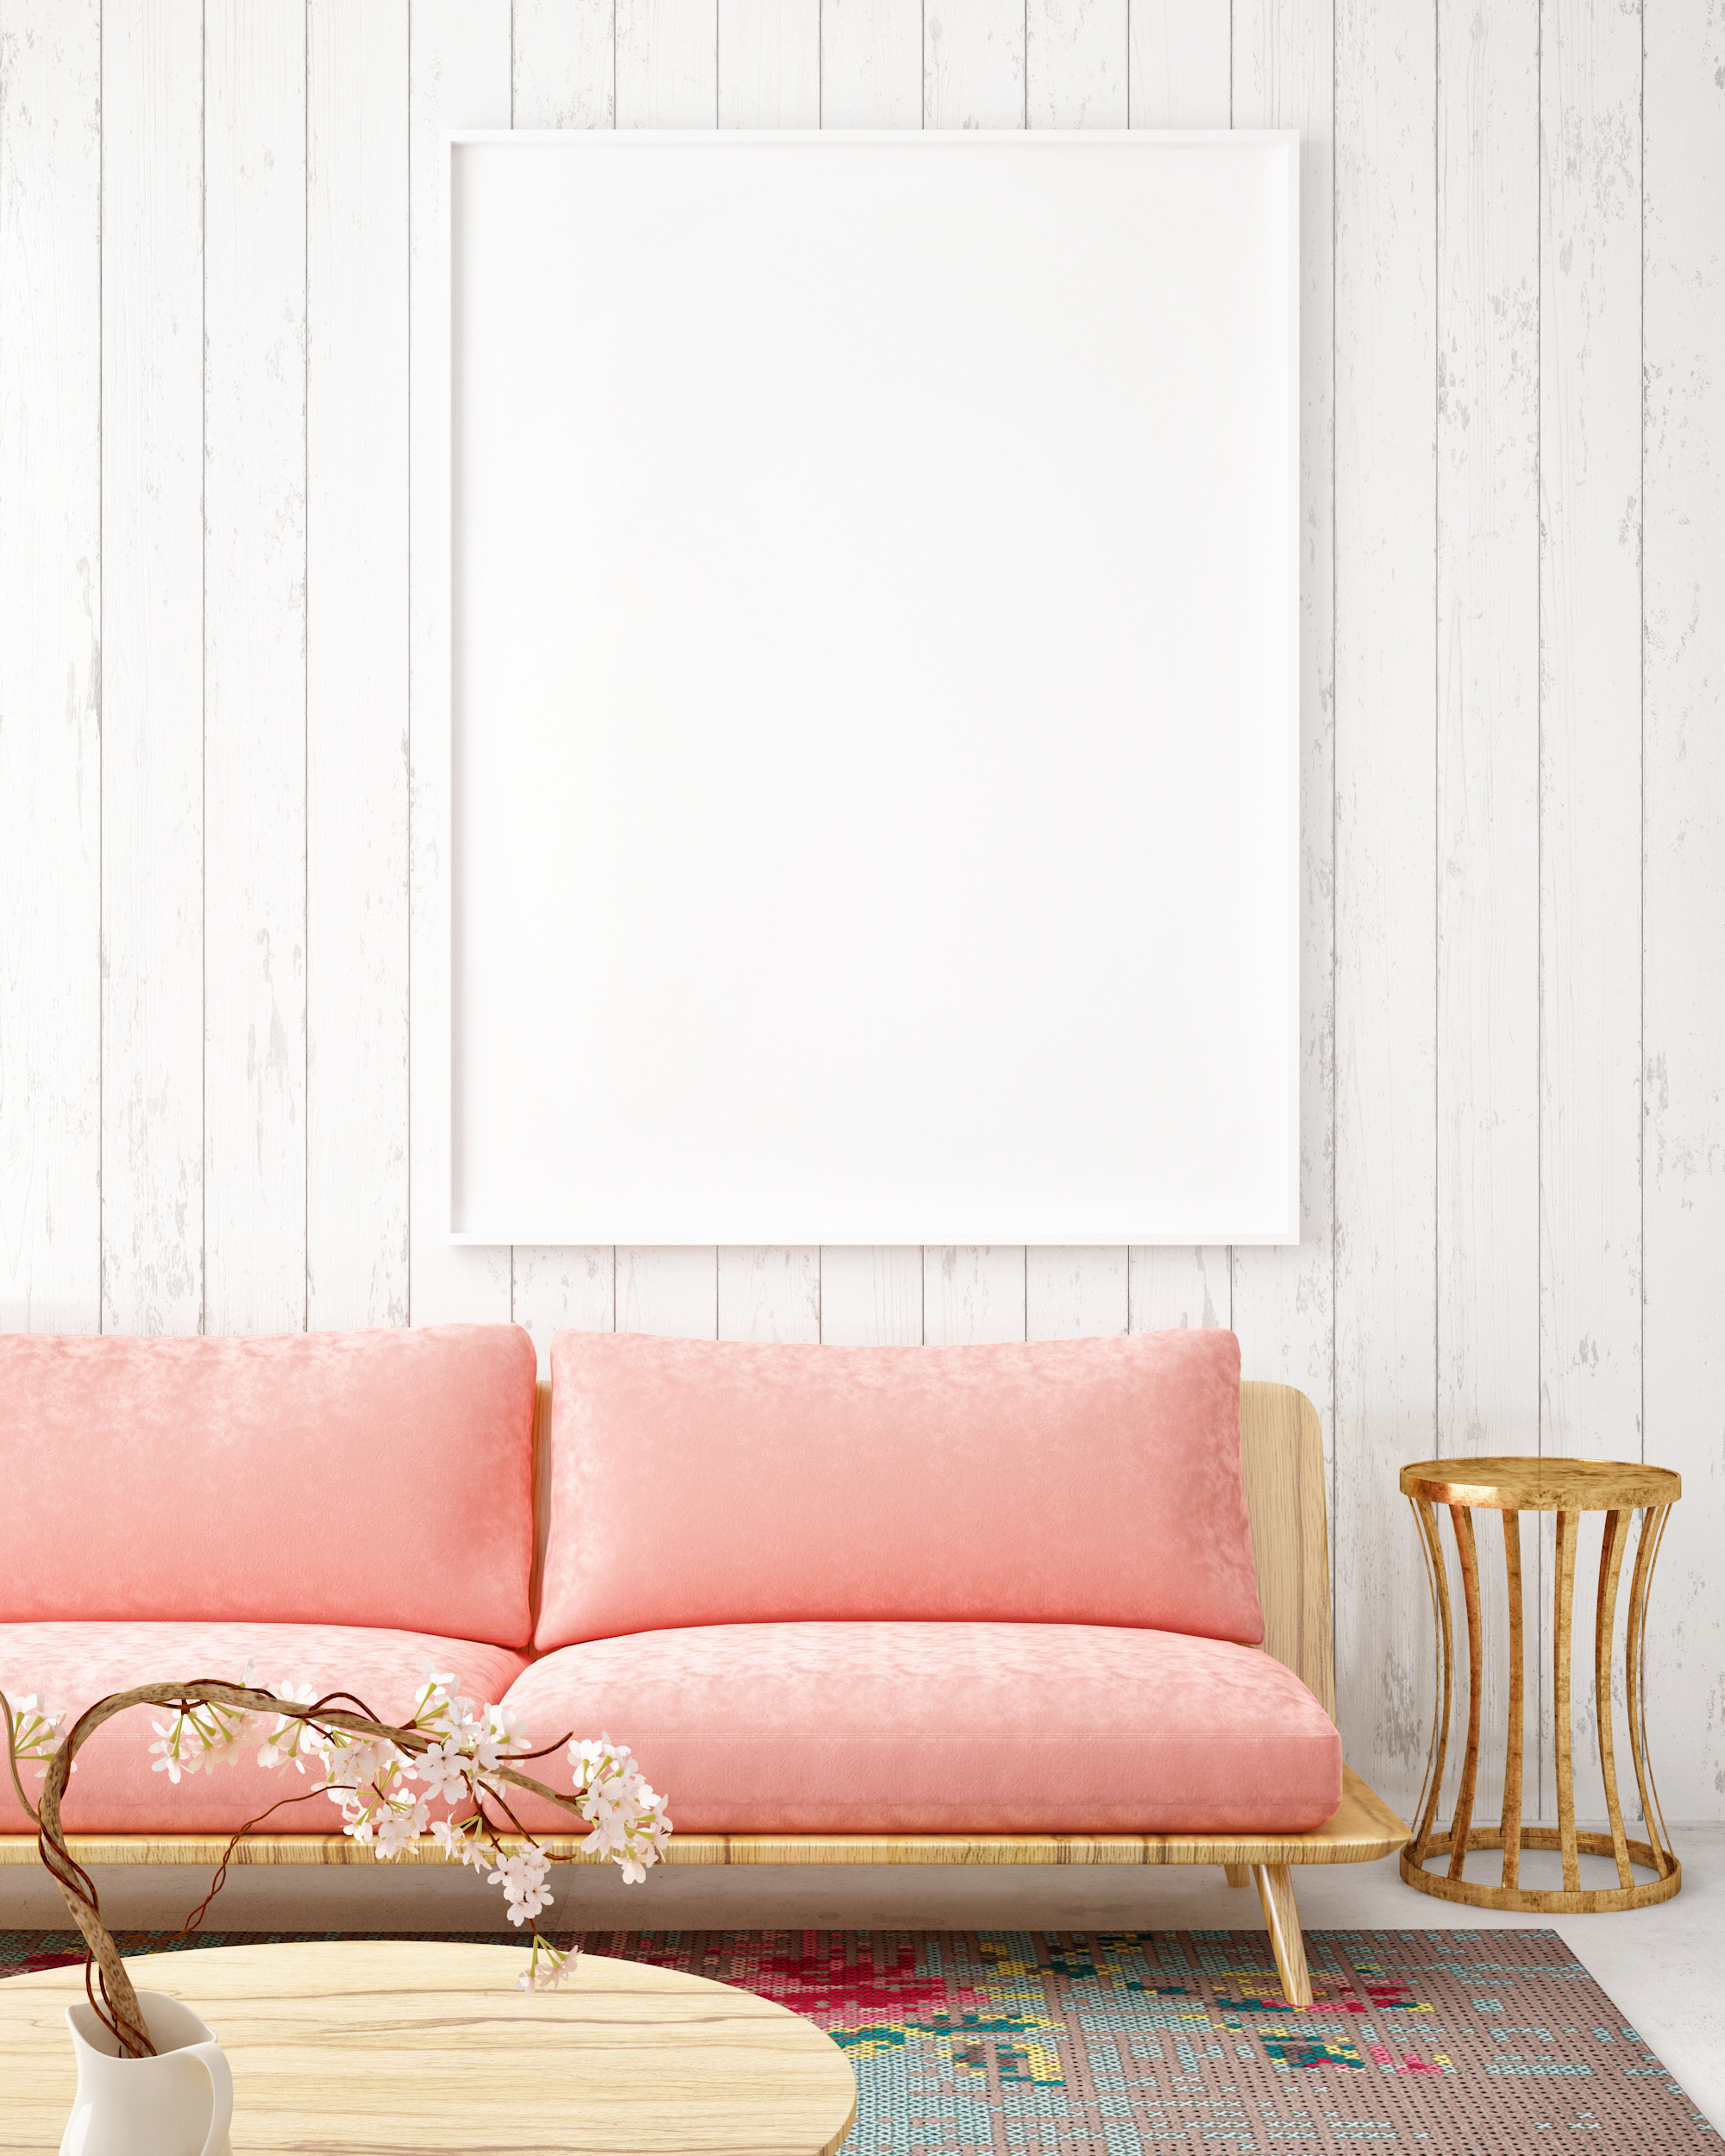 Sofa with blank hanging picture 55842